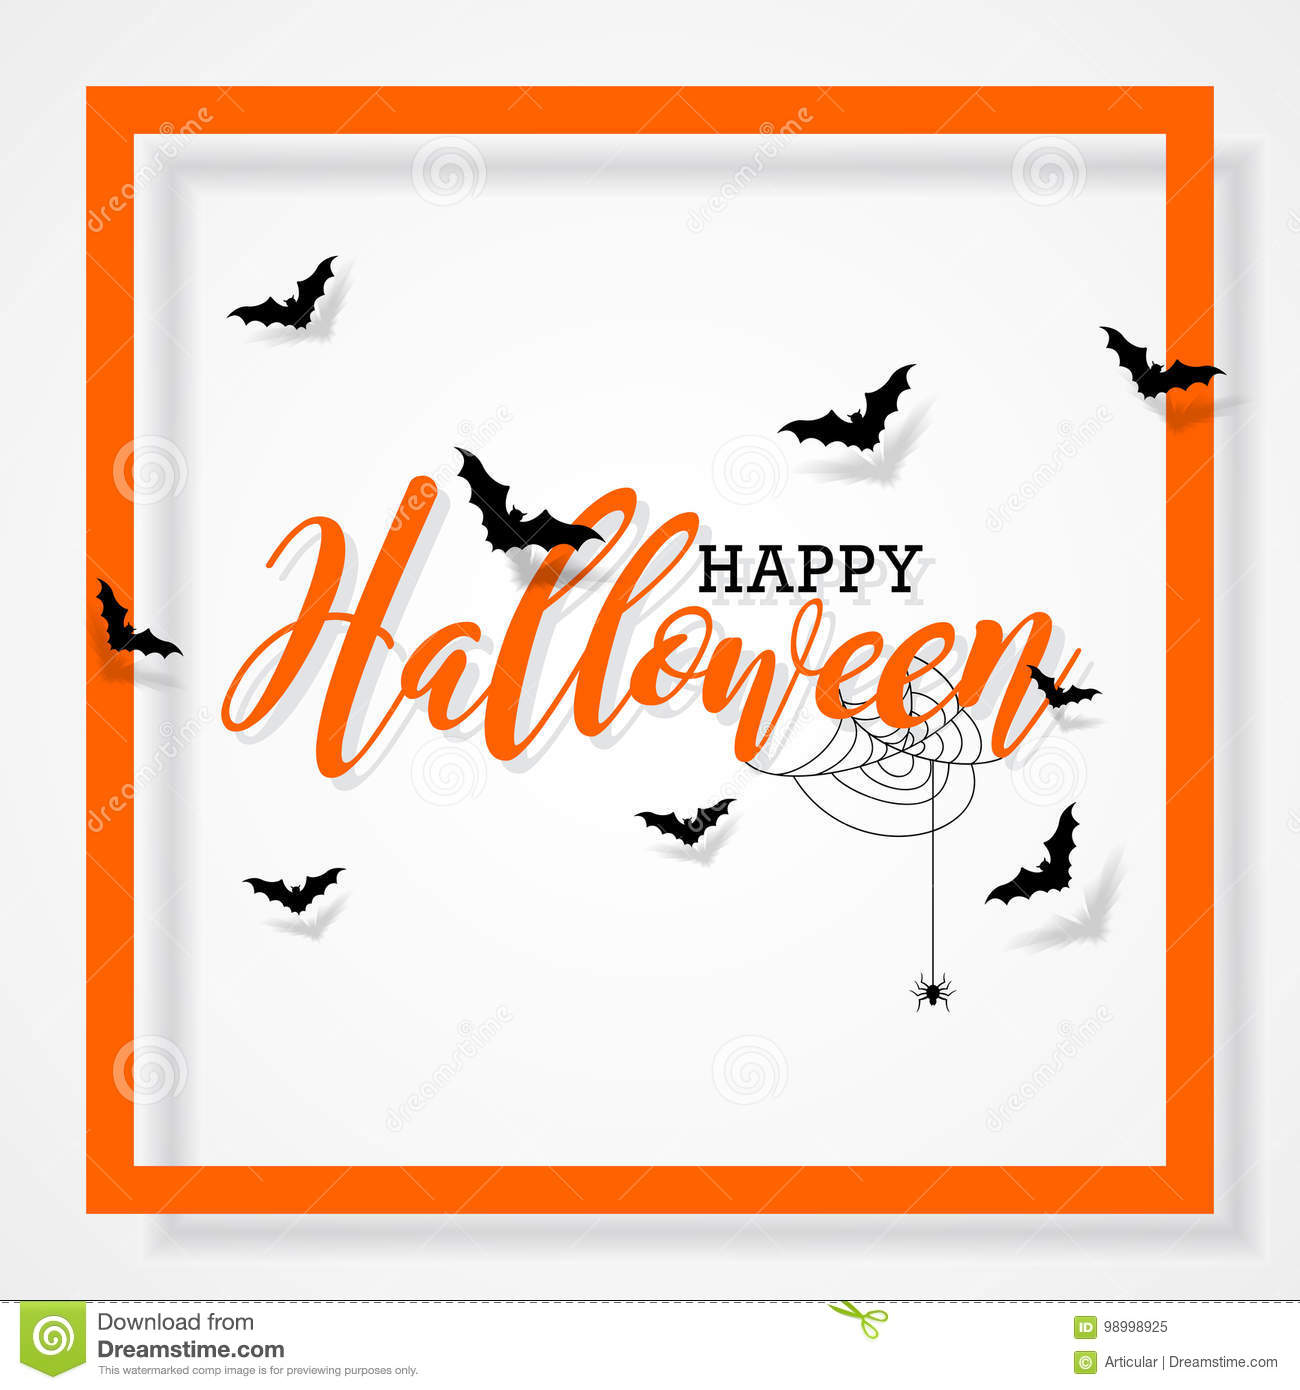 Happy Halloween vector illustration with bats and spider on black background. Holiday design for greting card, poster or party in